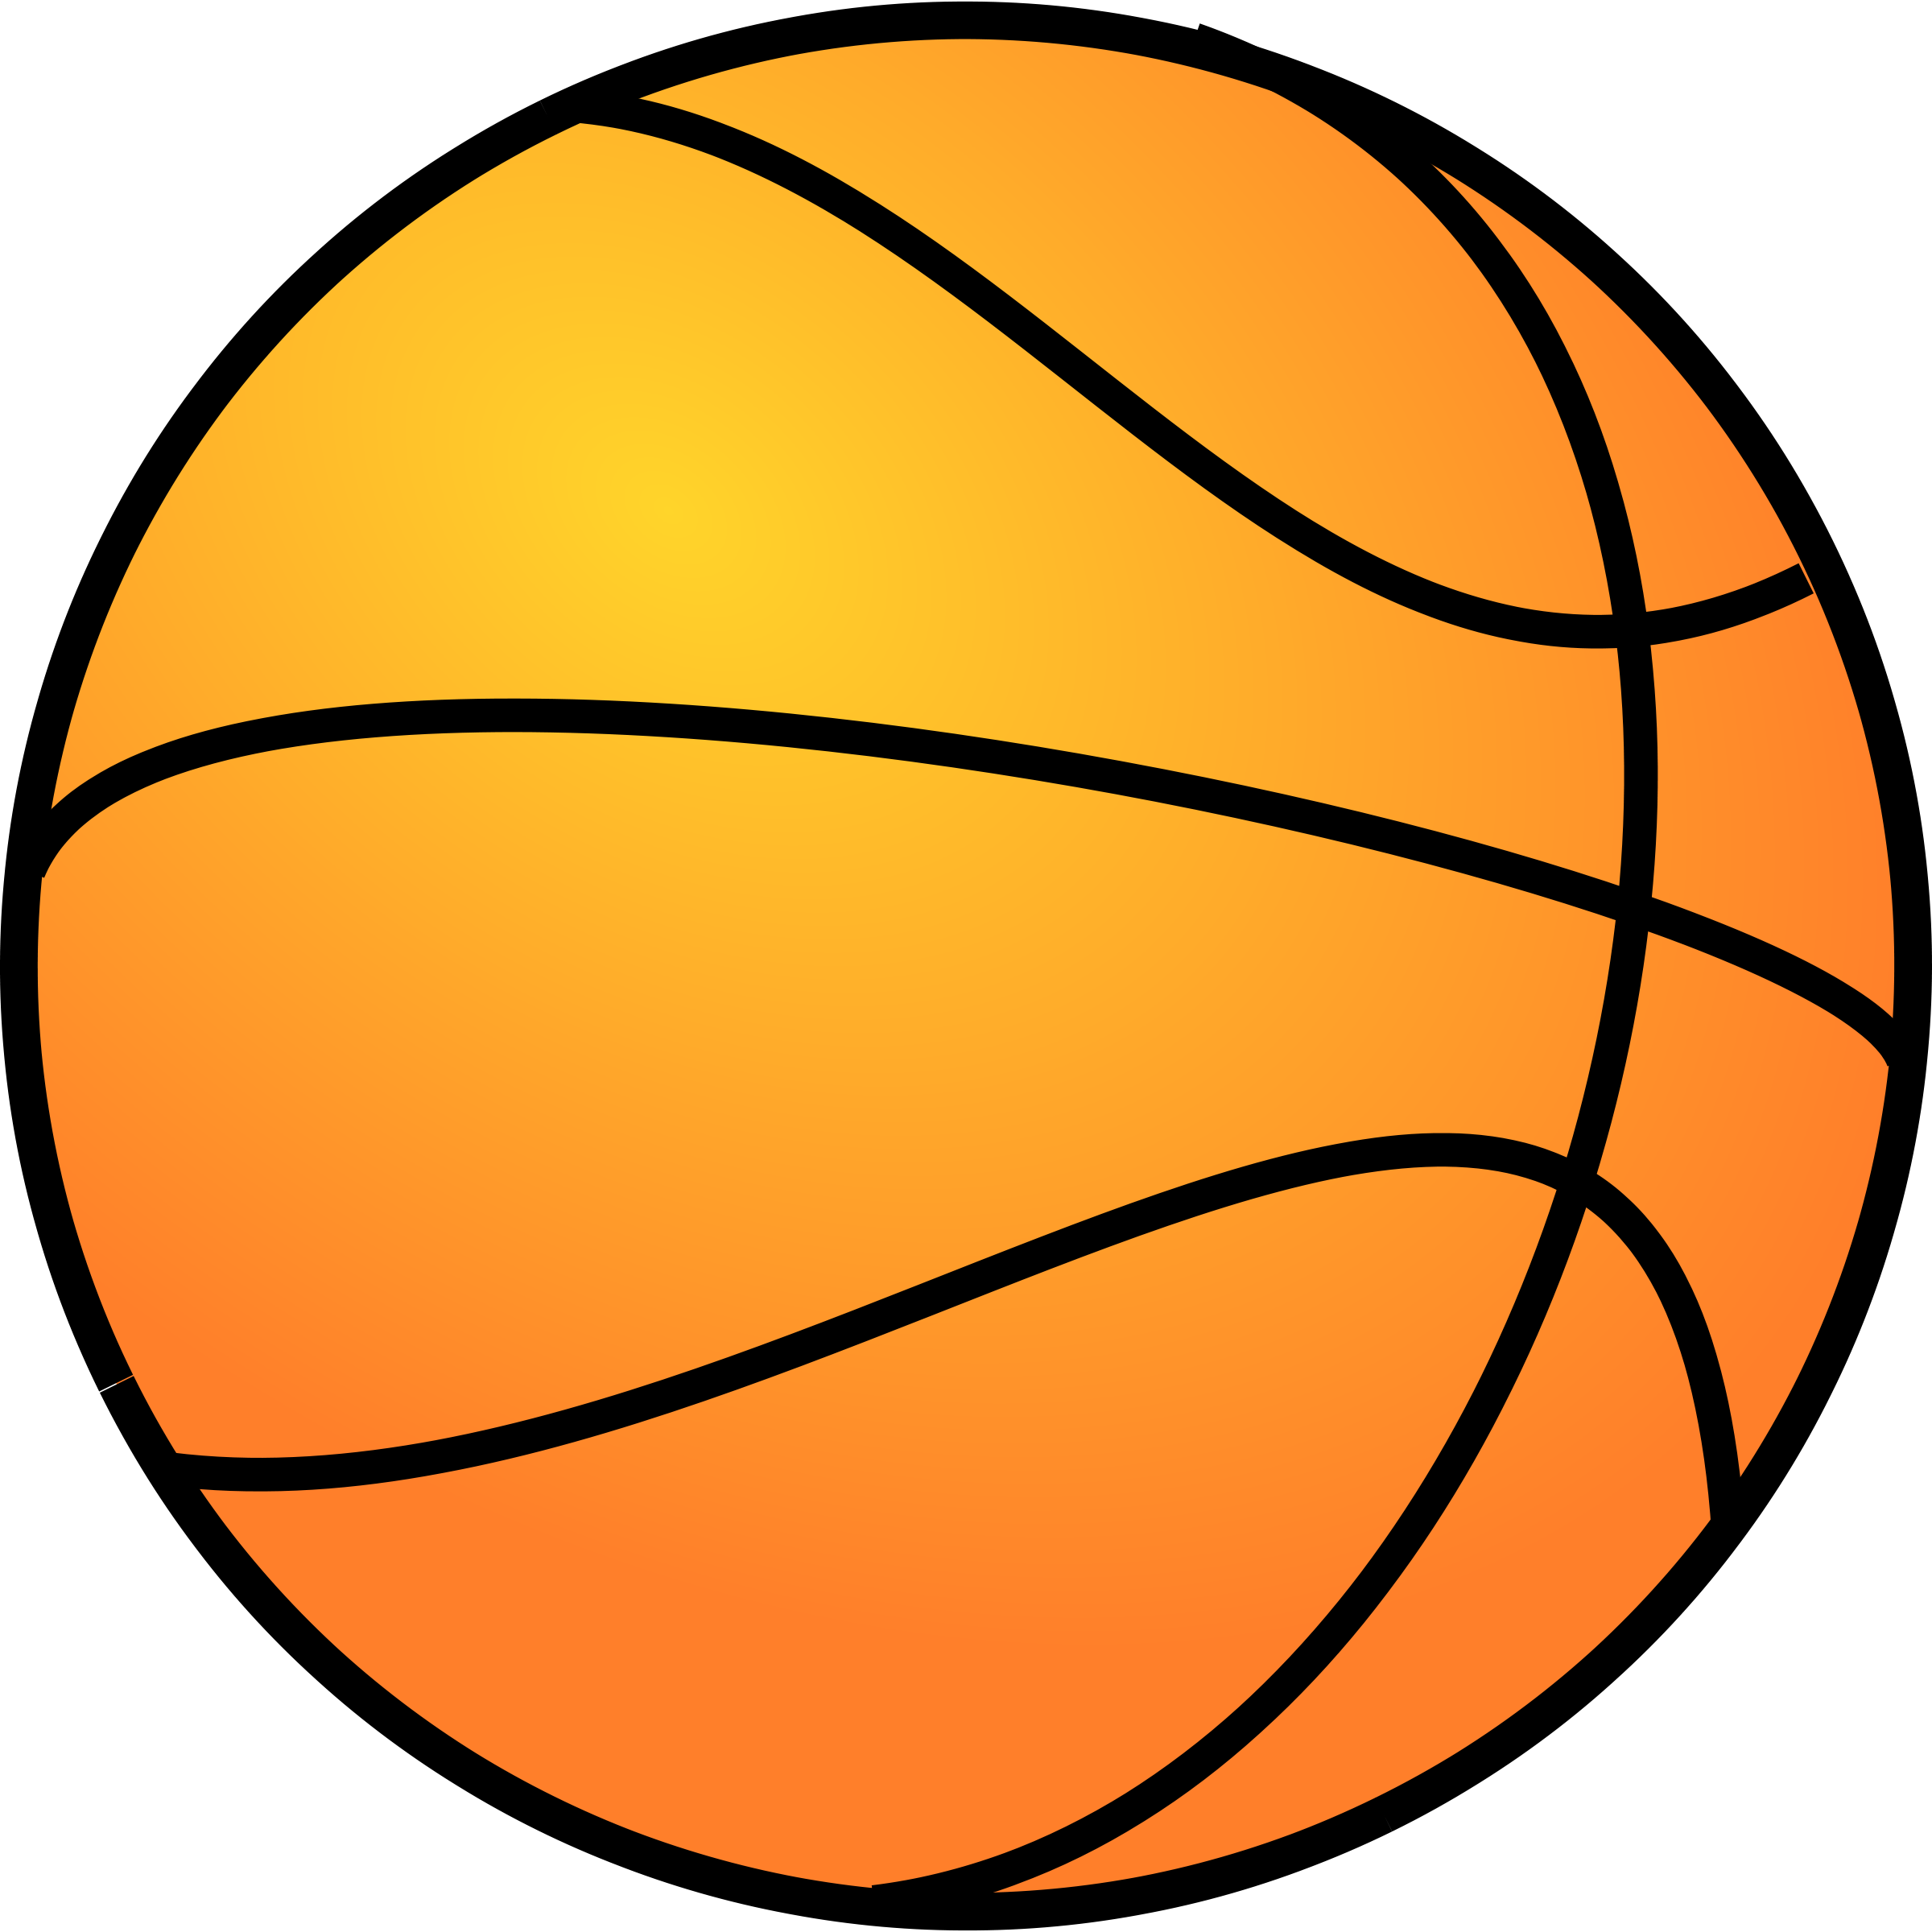 Basketball graphics clipart picture freeuse stock Clip Art Basketball & Clip Art Basketball Clip Art Images ... picture freeuse stock